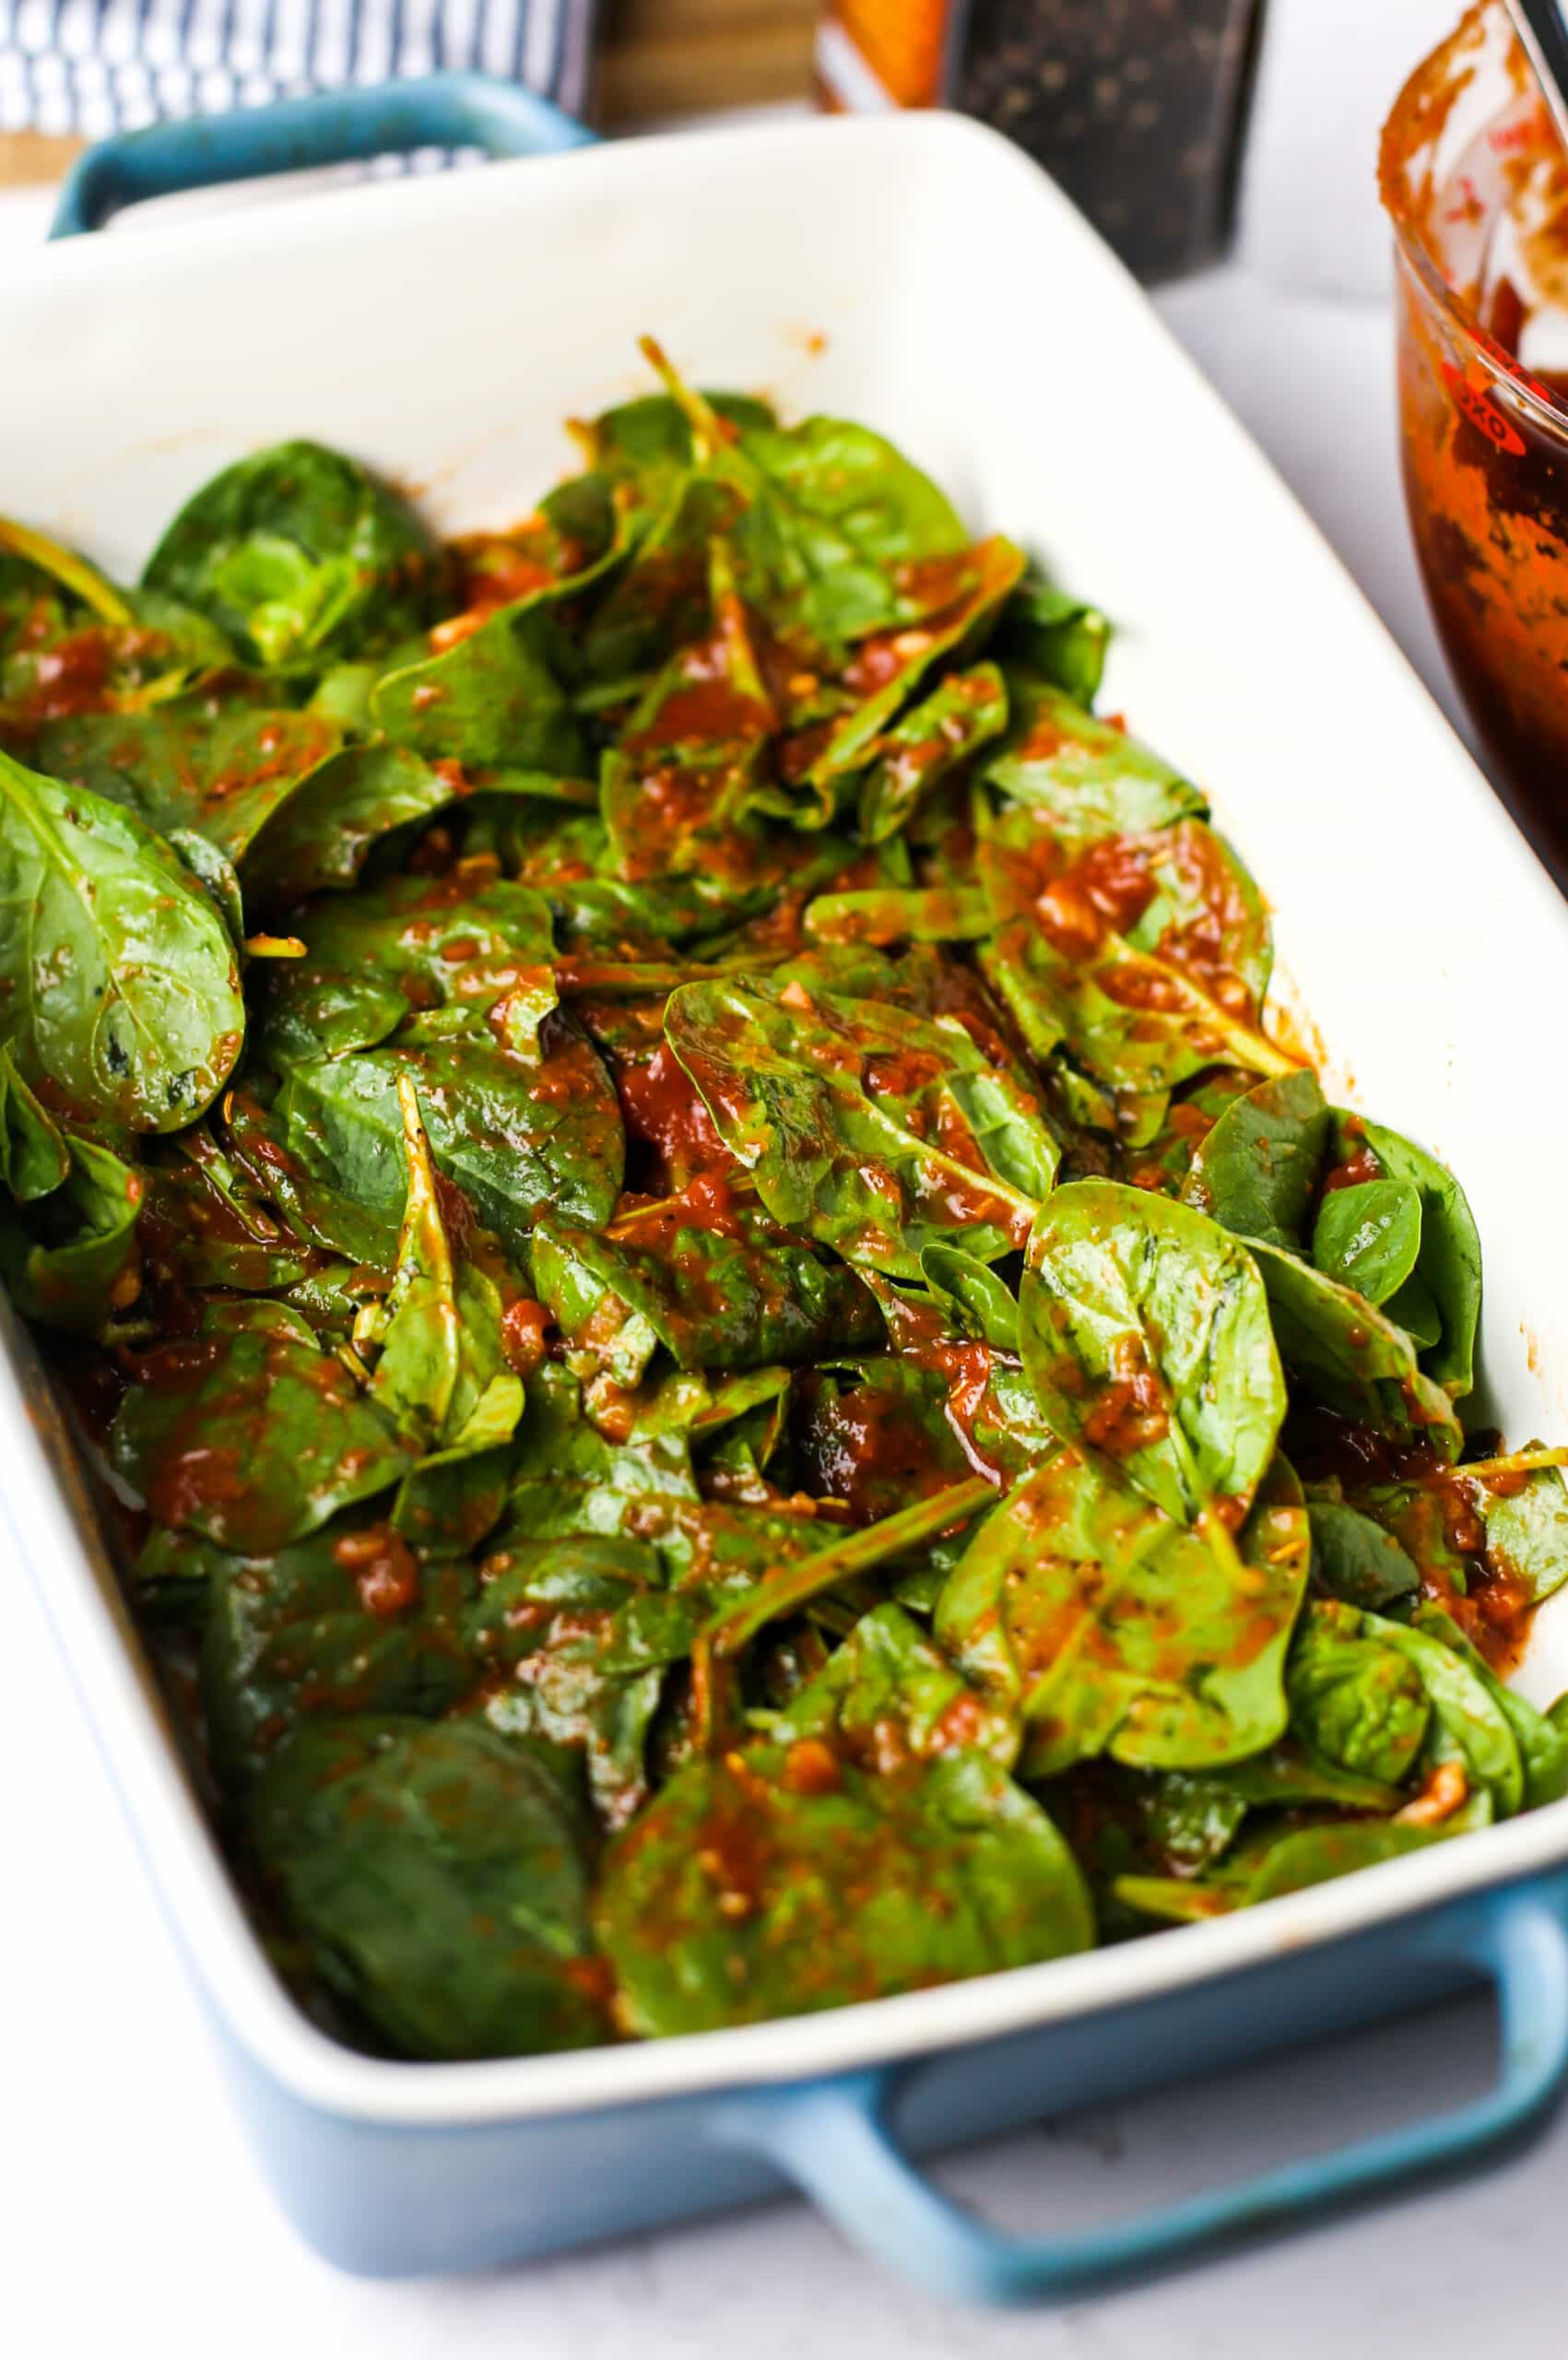 Marinara sauce mixed with fresh baby spinach in blue and white rectangular casserole dish.